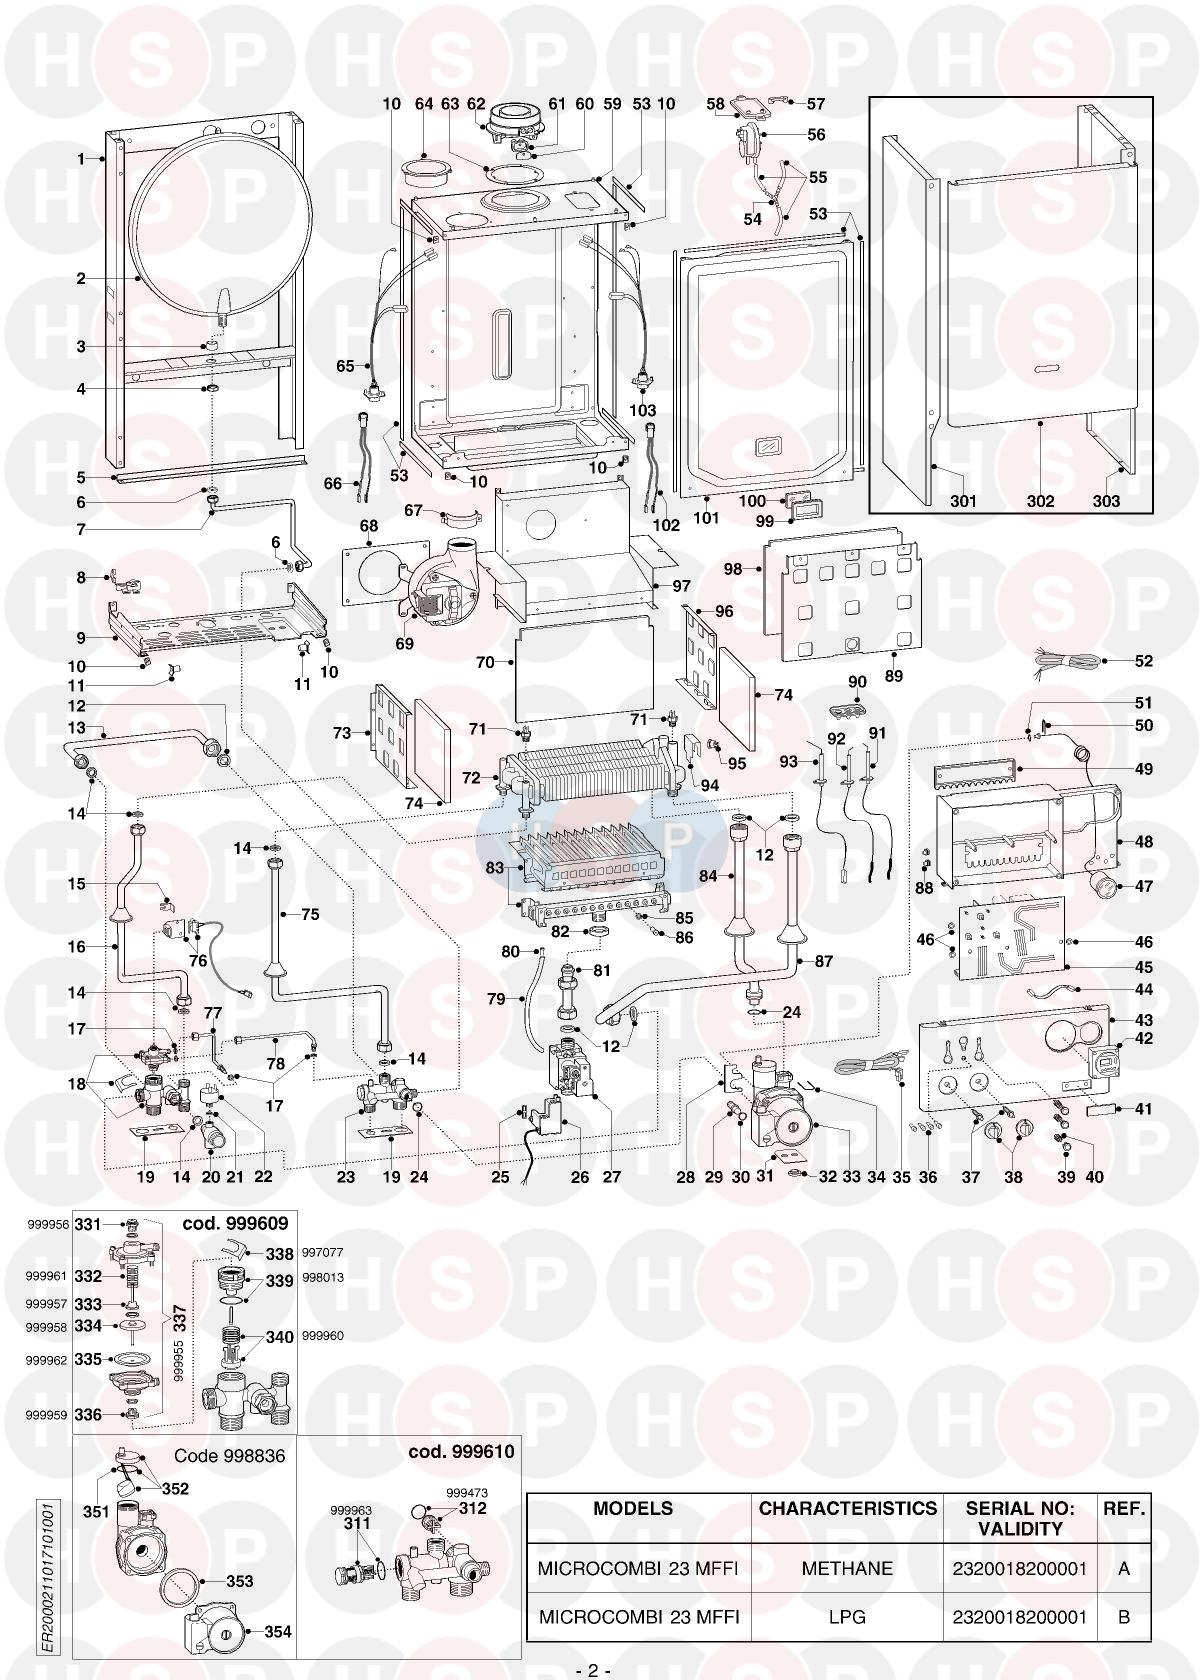 Ariston MICROCOMBI 23 MFFI EDITION1 (EXPLODED VIEW